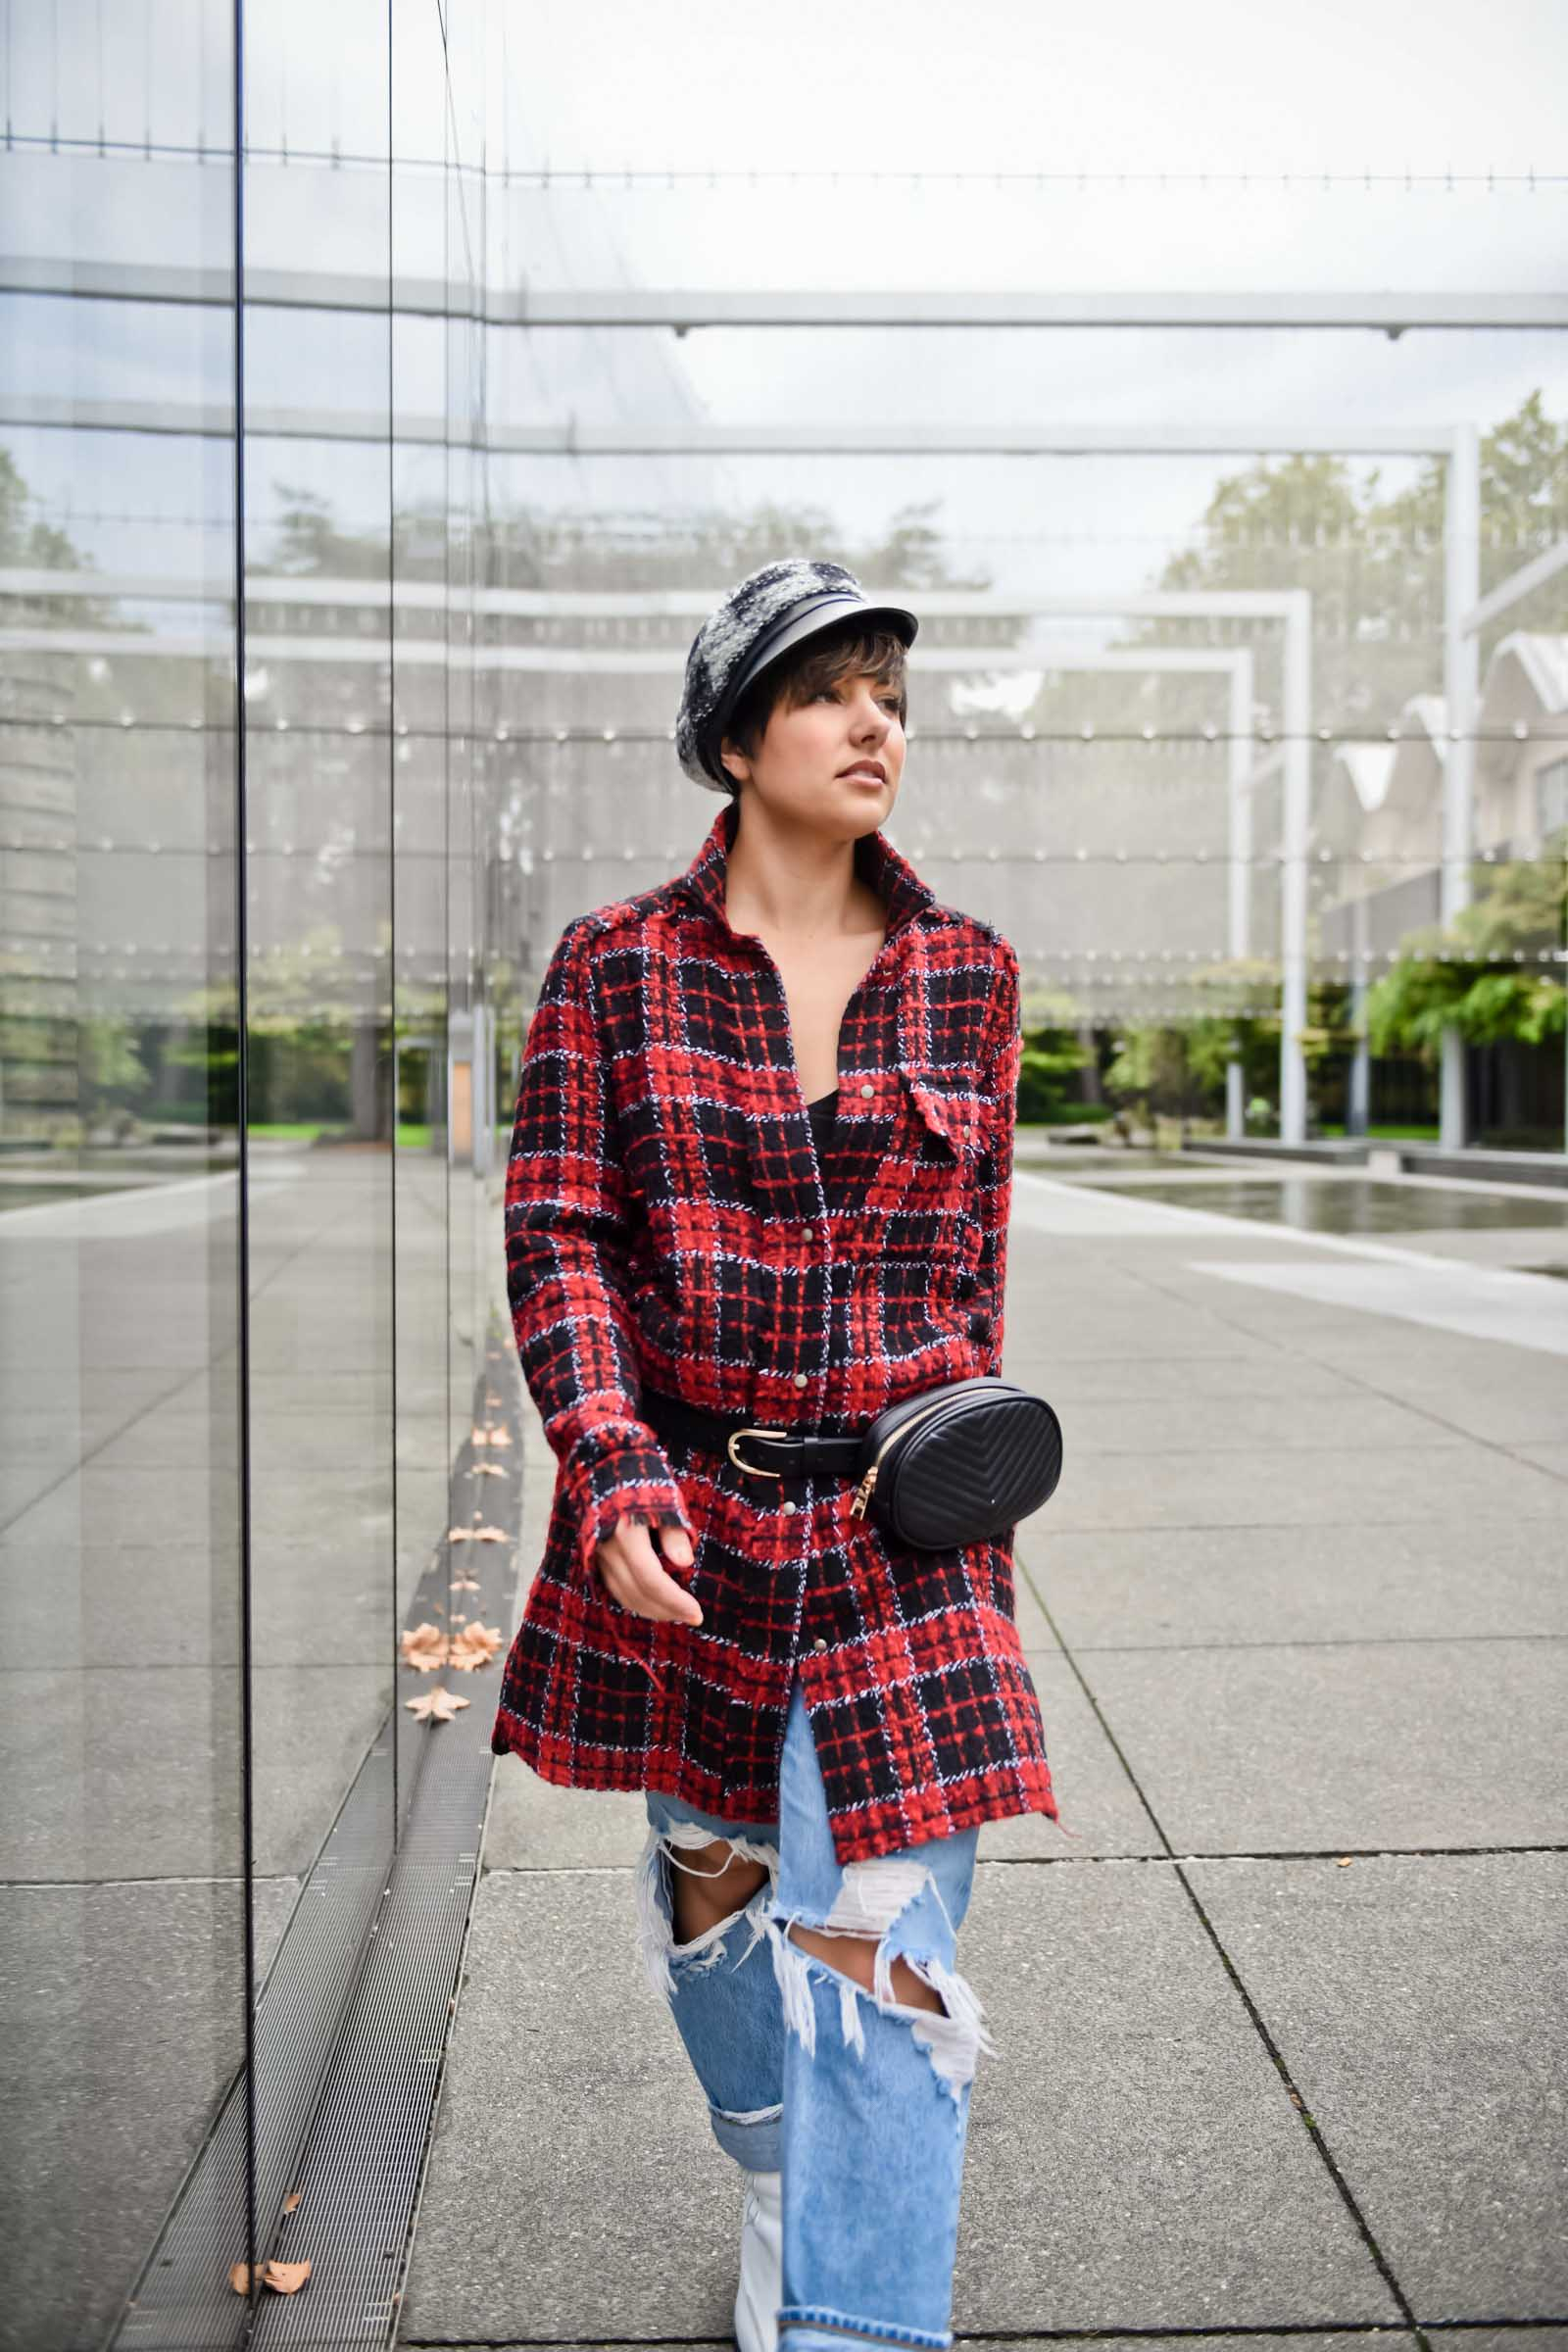 How to wear Tweed for a Casual Holiday Outfit - BloggerNotBillionaire.com